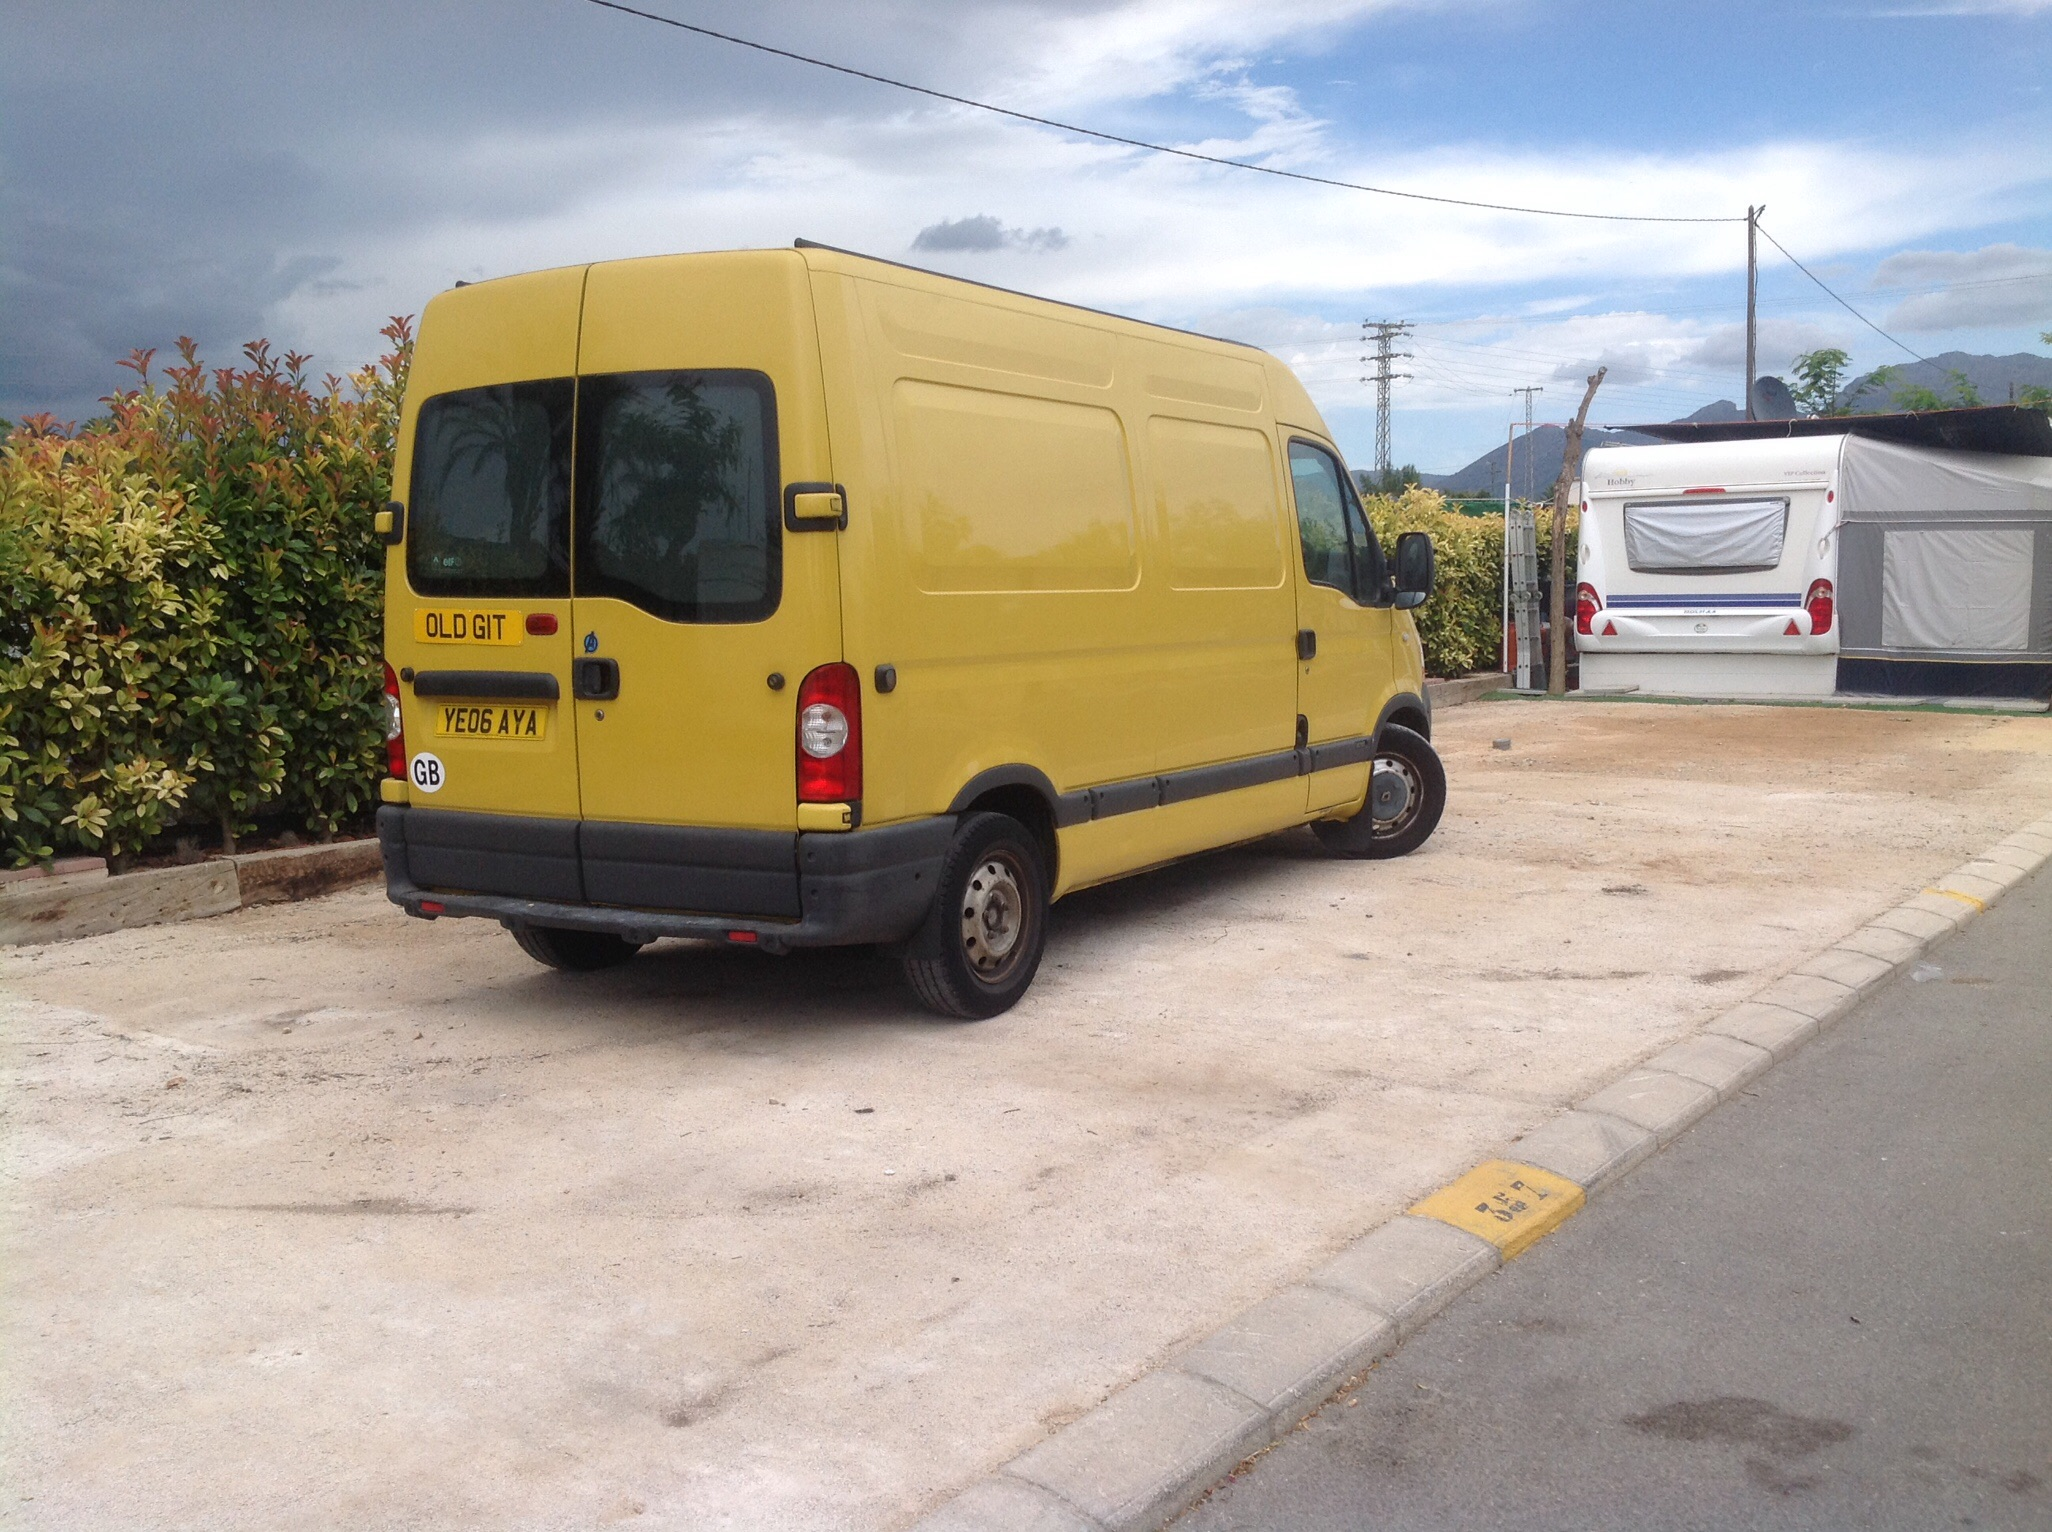 2cc521e4f9 For sale  Renault master van - Buy and sell items in Benidorm ...